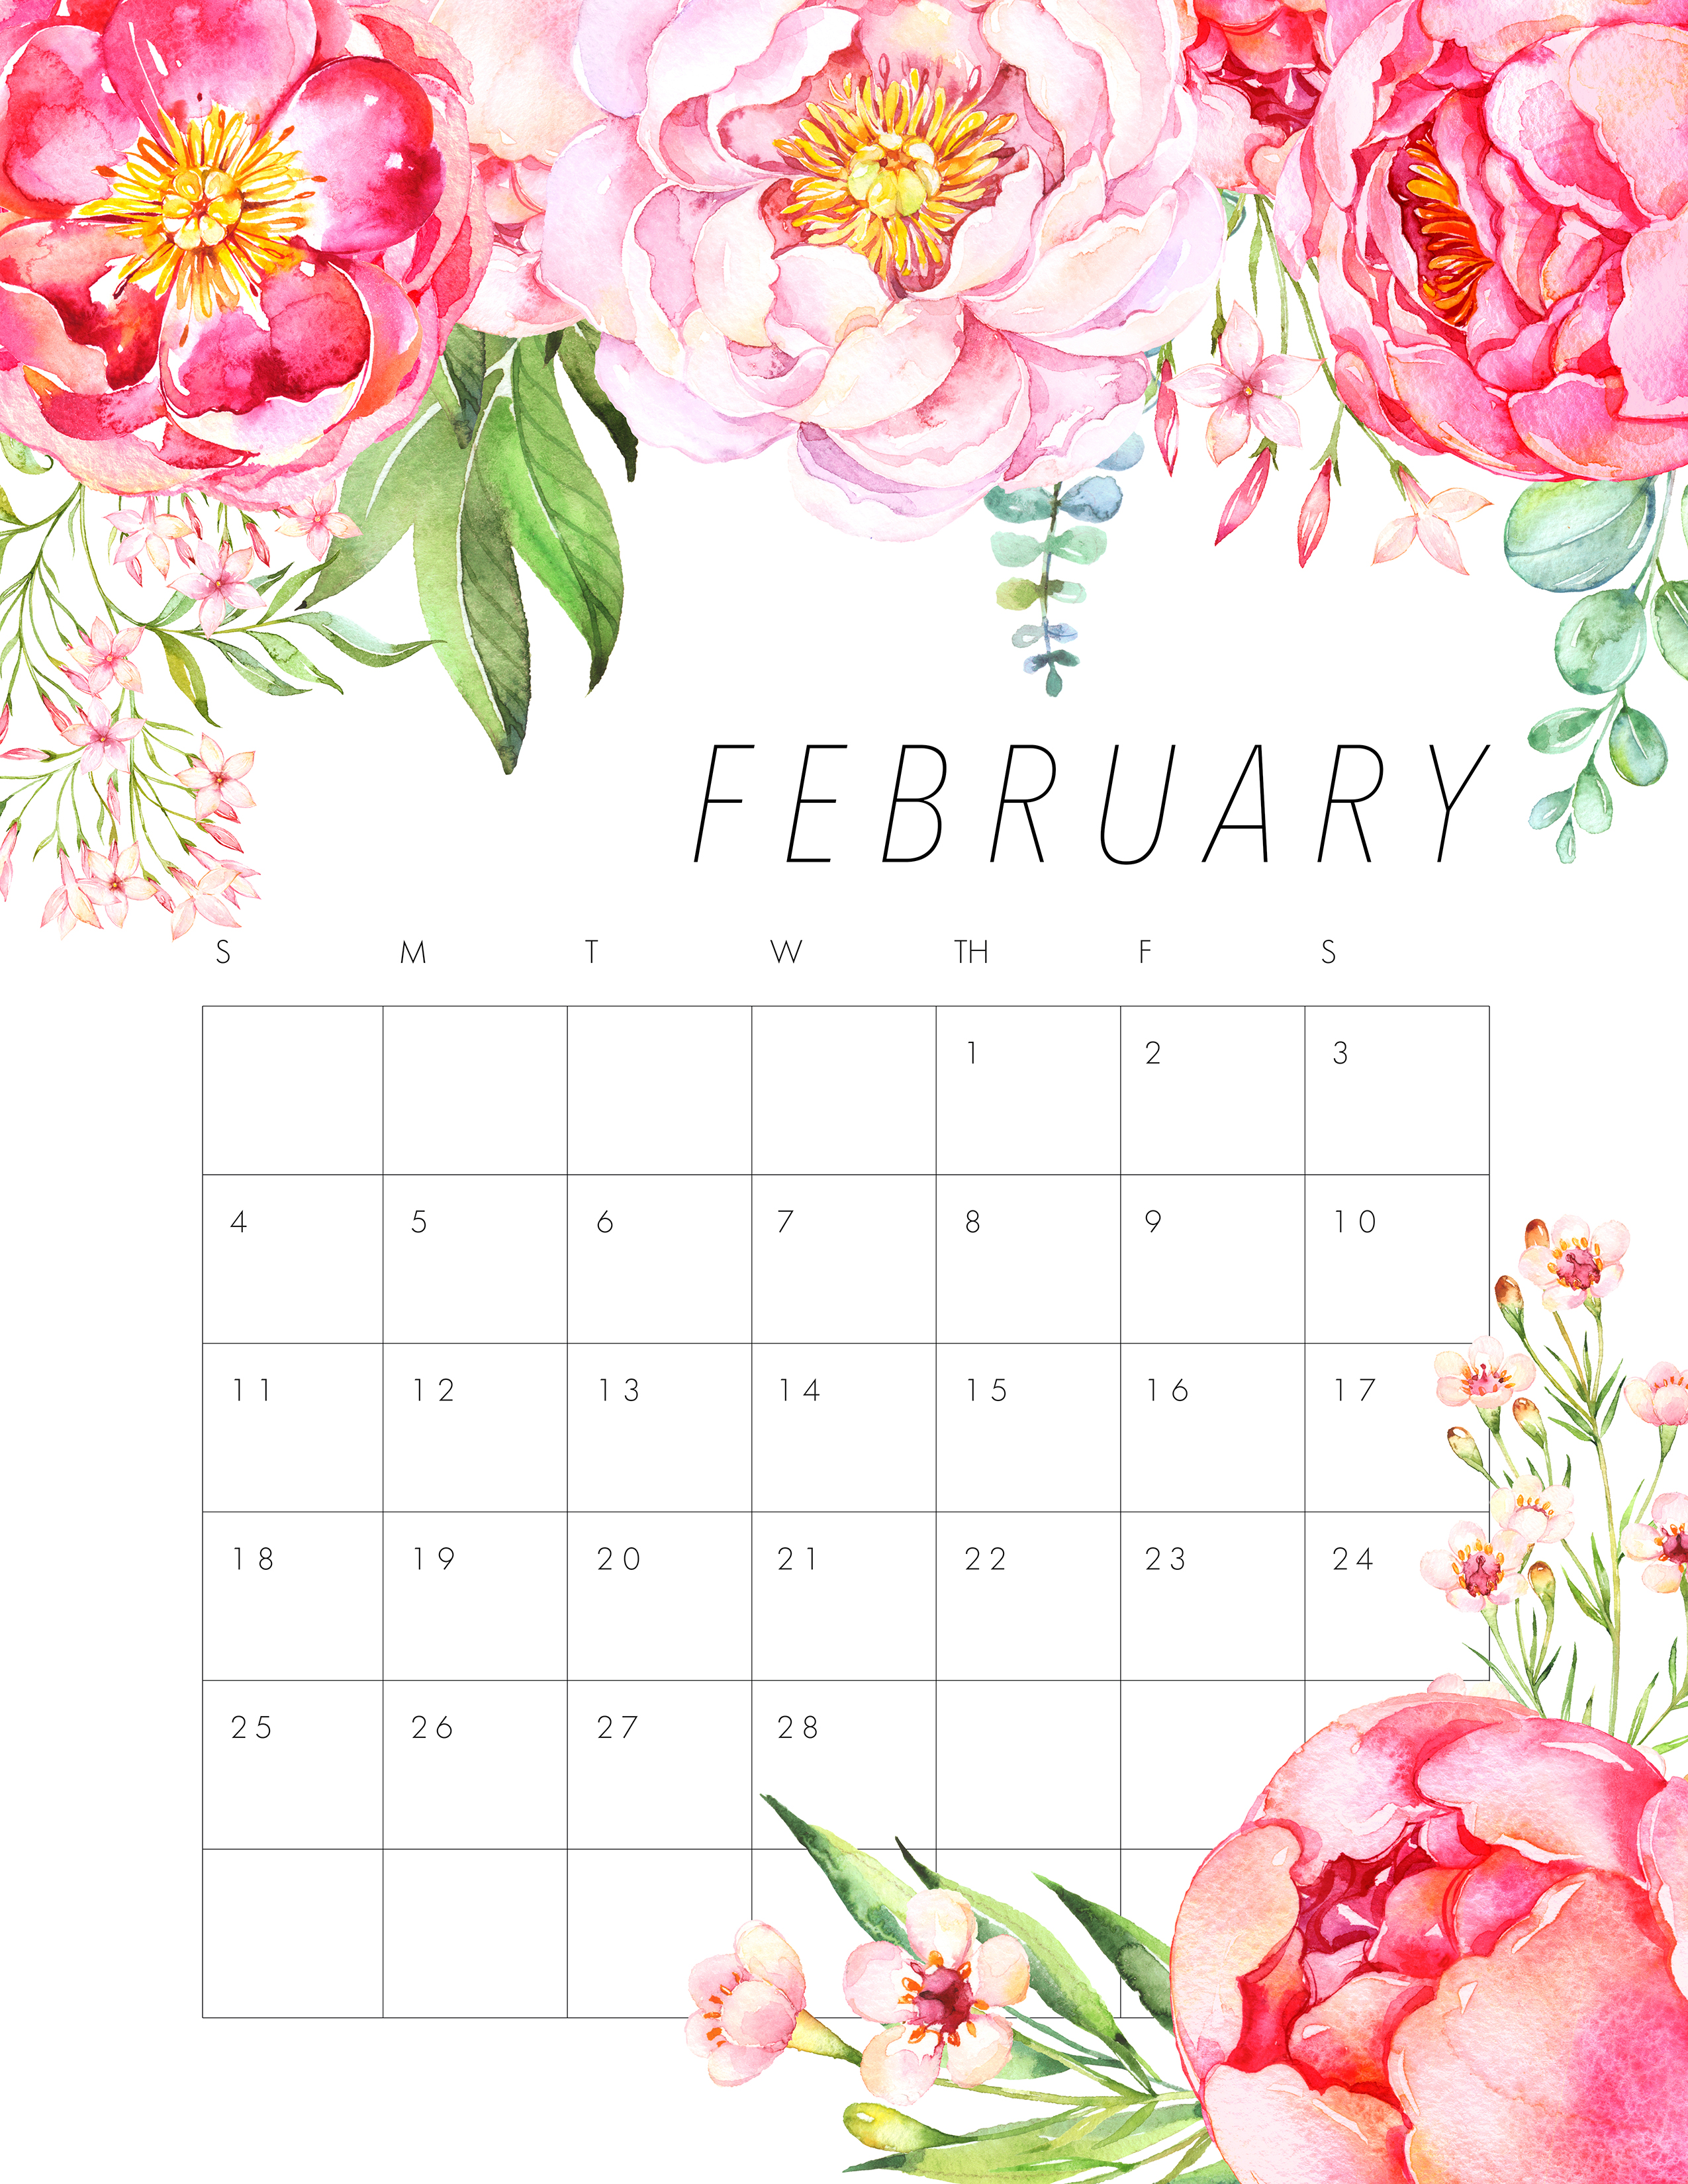 Calendar Flowers : Free printable floral calendar the cottage market